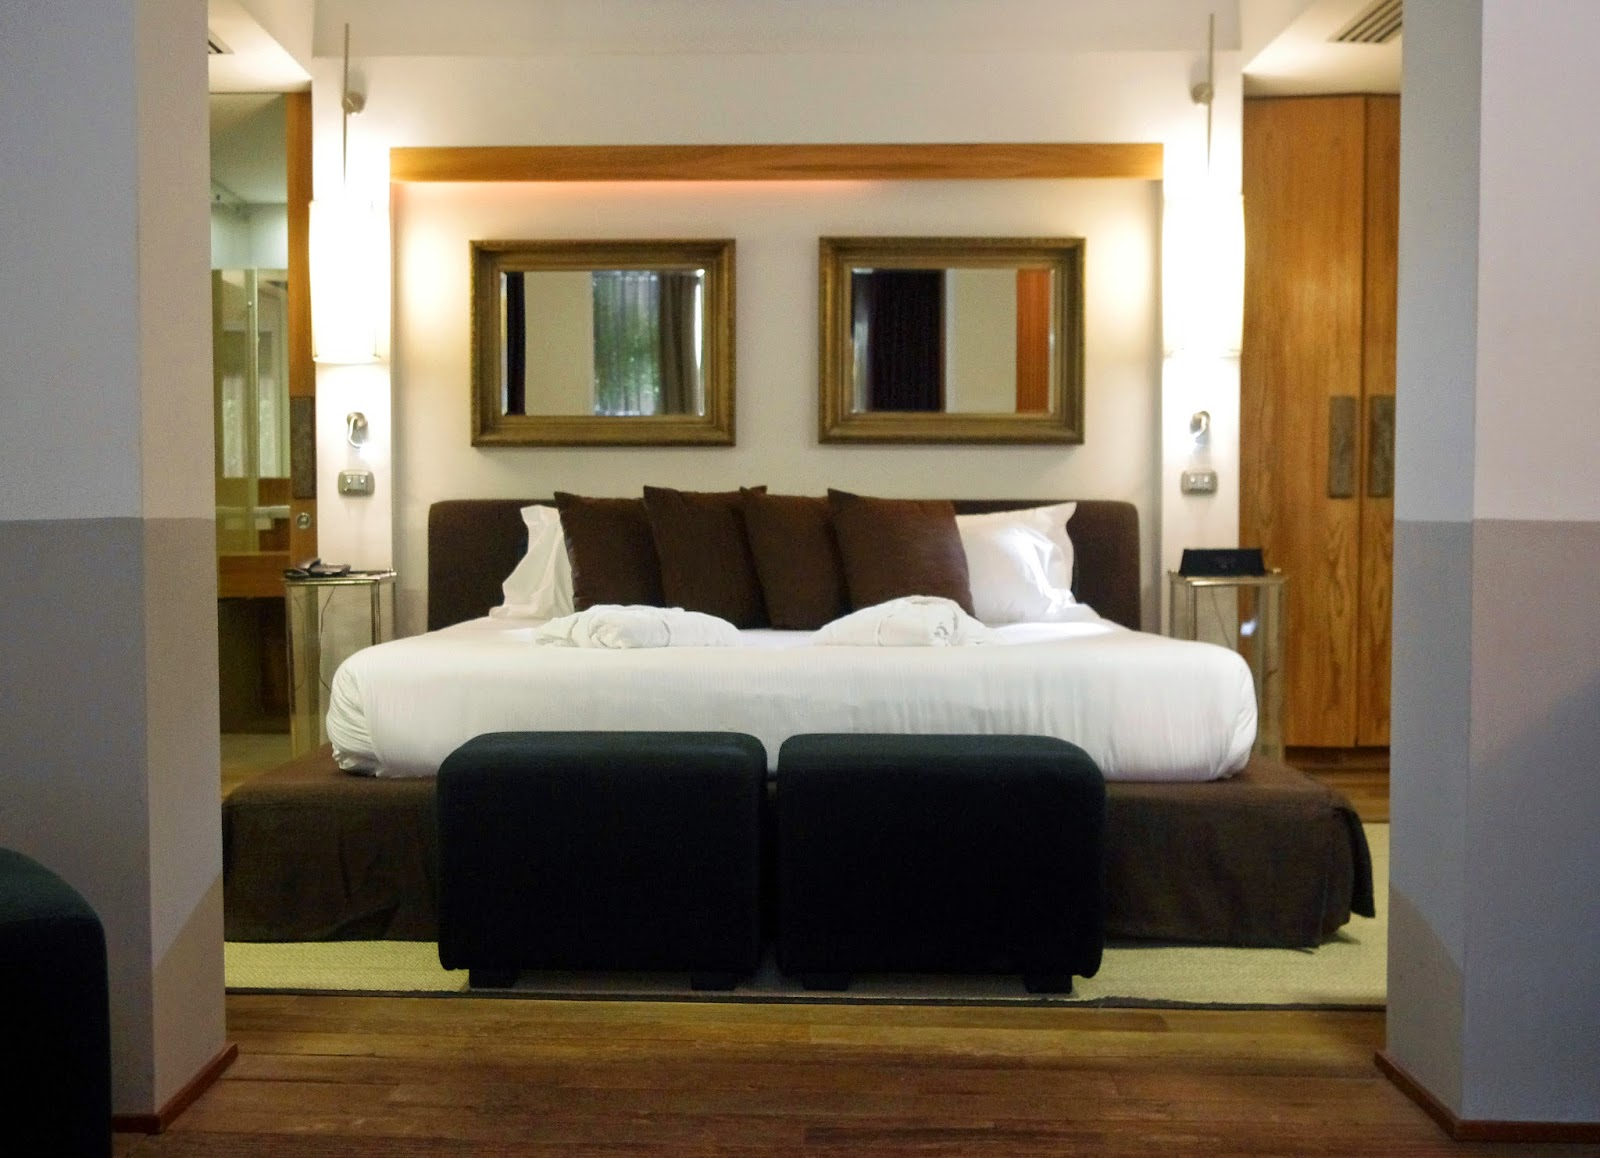 A Luxury stay at Margutta 54 Luxury Suites, Rome